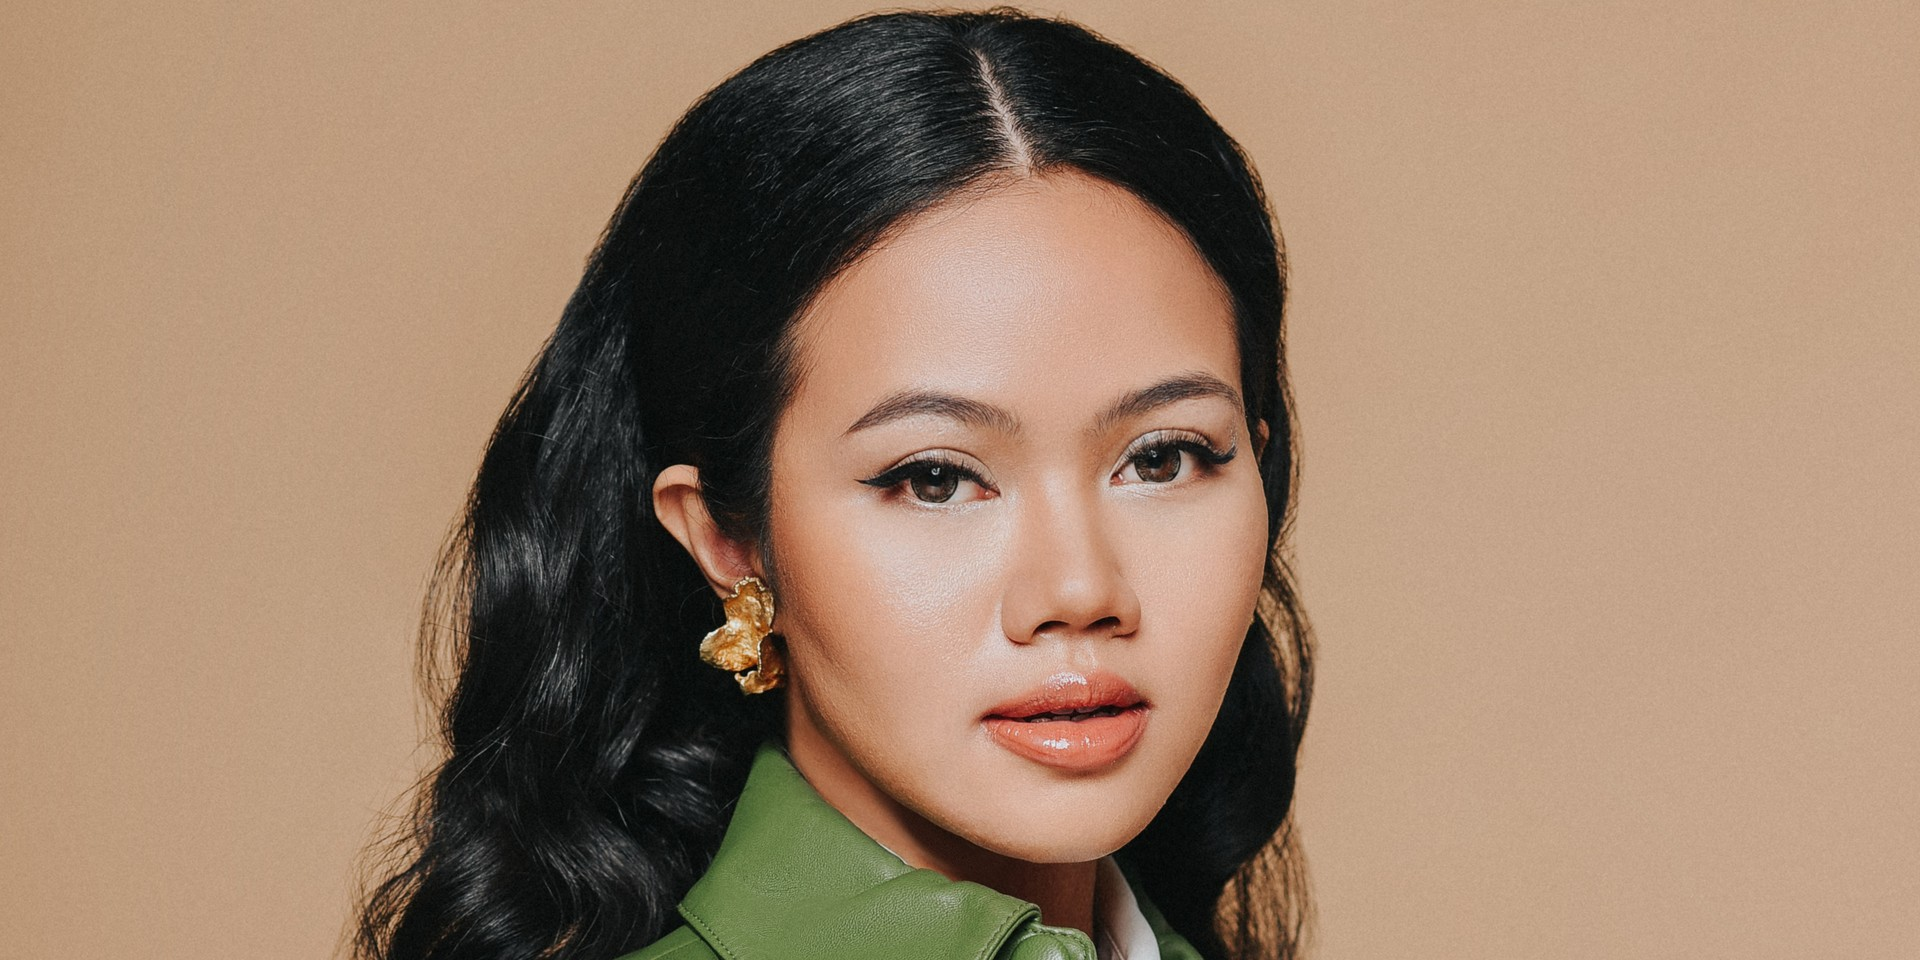 Asia Spotlight: 'Music has the power to remind me of who I truly am' - Yura Yunita on embracing herself and celebrating imperfections